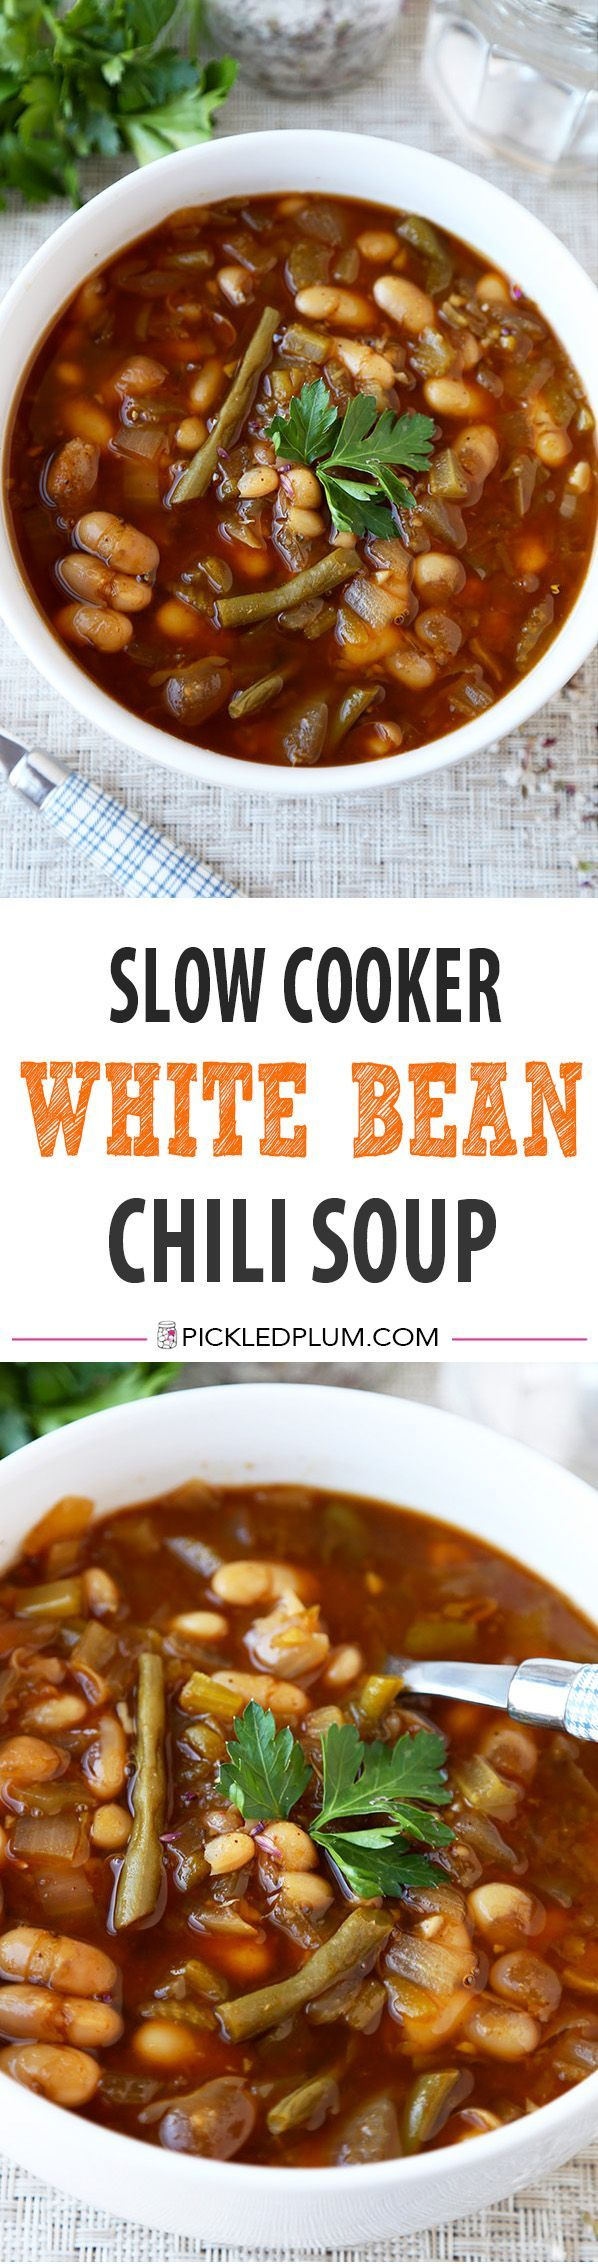 Slow Cooker White Bean Chili Soup - A healthy and comforting slow cooker white bean chili soup that takes less than 10 minutes to prep! Vegan, gluten free, healthy, easy, recipe